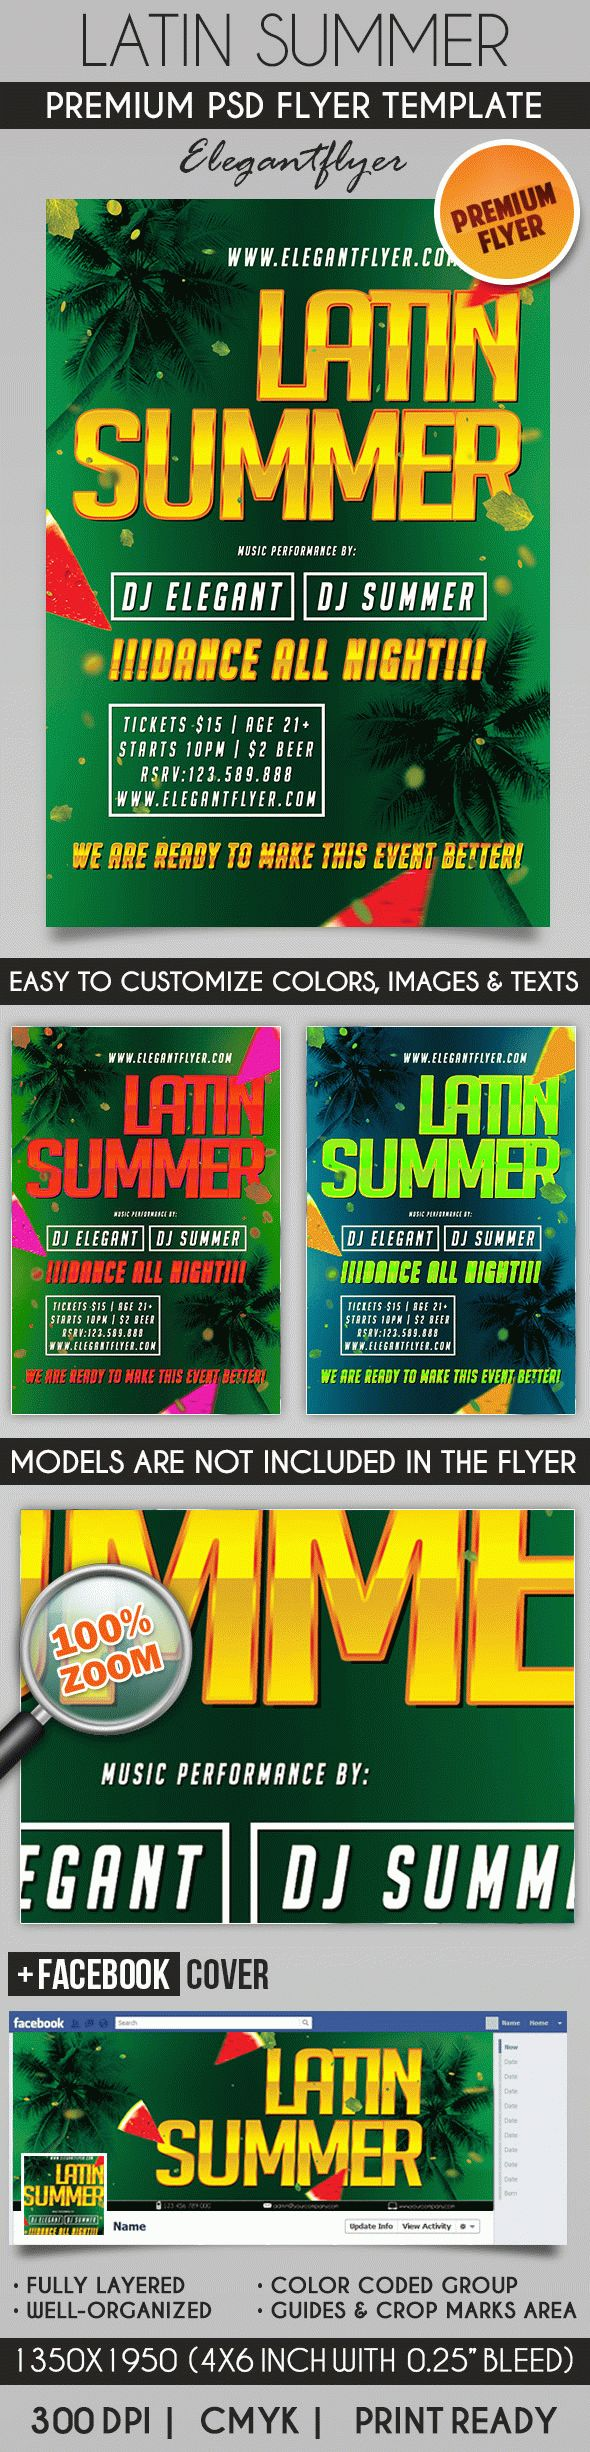 Latin summer flyer template by elegantflyer latin summer flyer template saigontimesfo